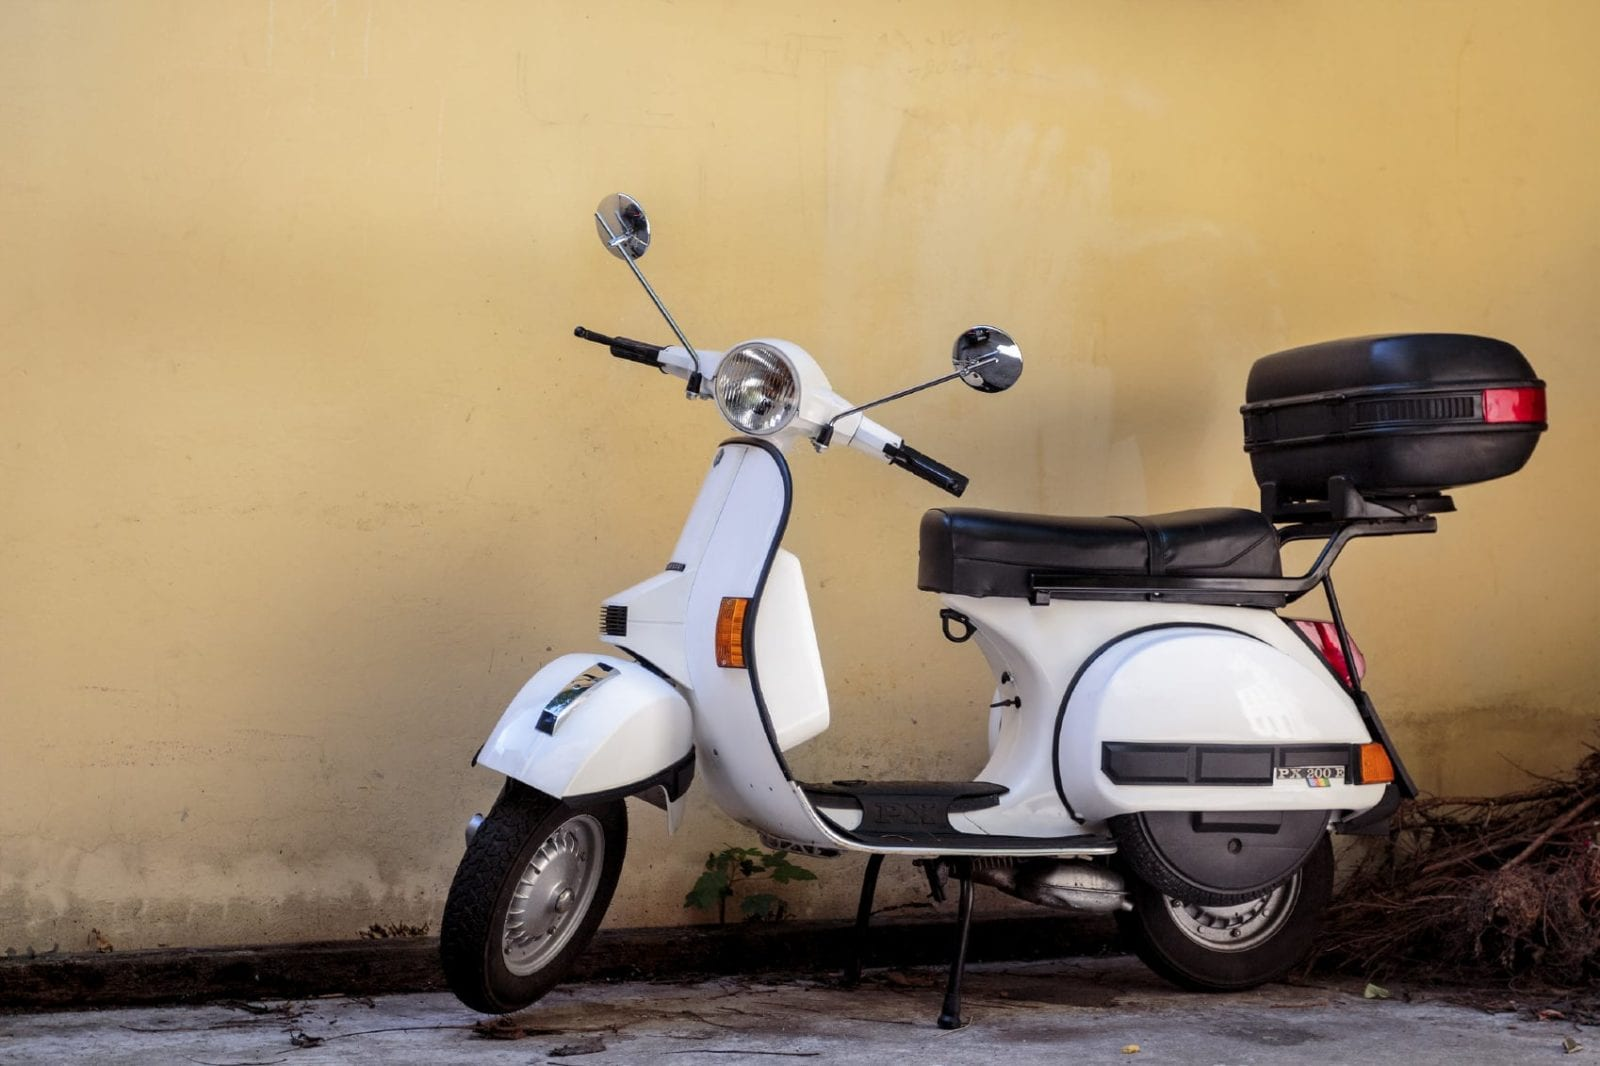 Moped Parked In An Alley Stock Photo